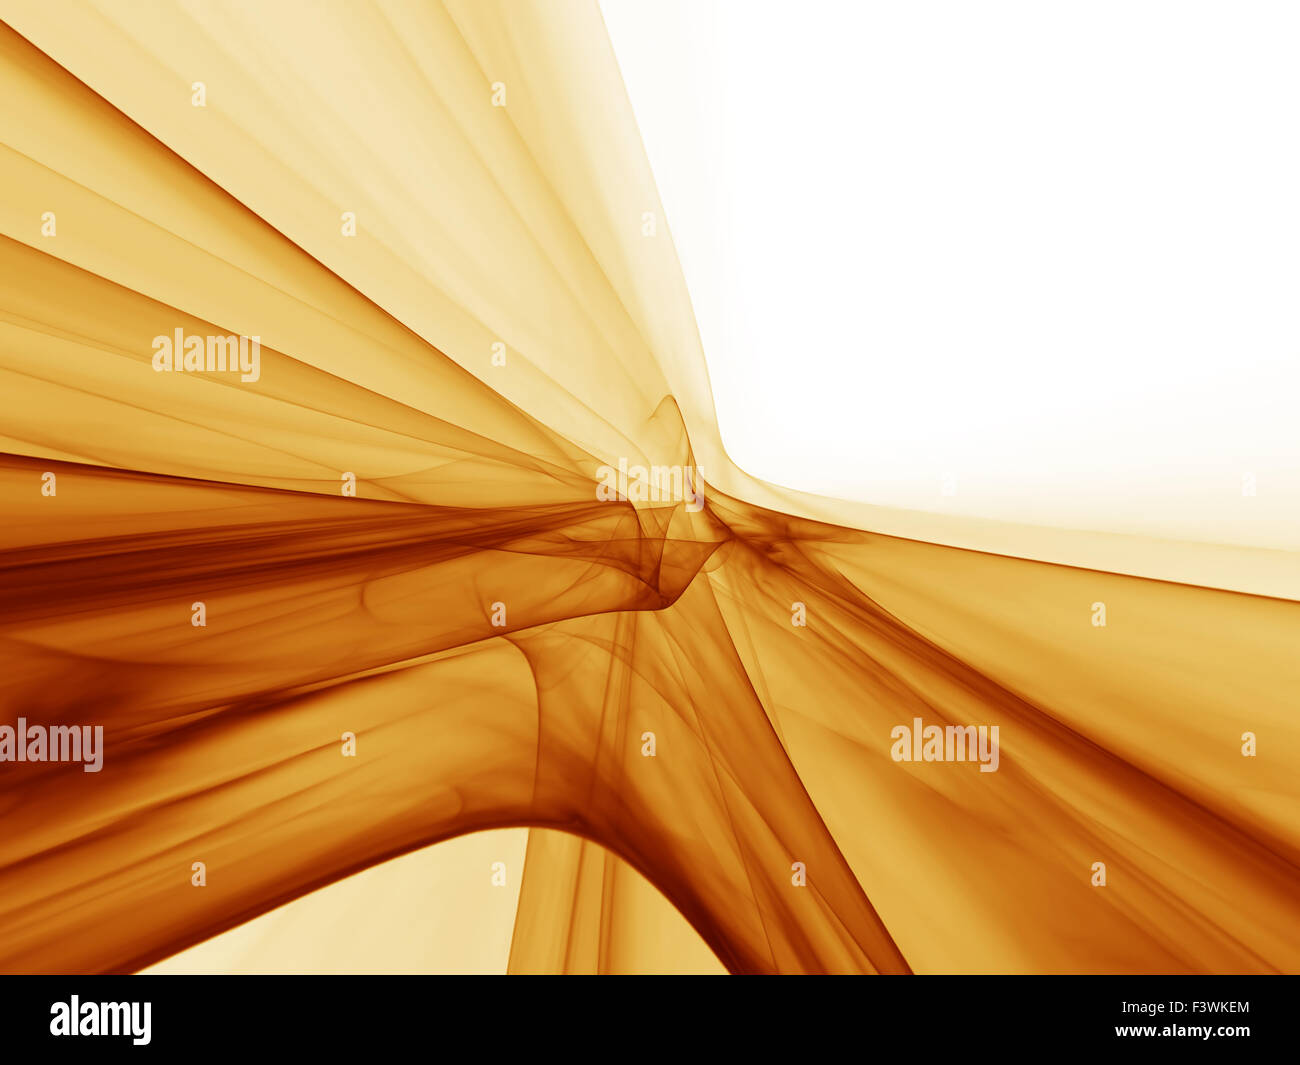 dynamic golden motion, flowing energy - Stock Image